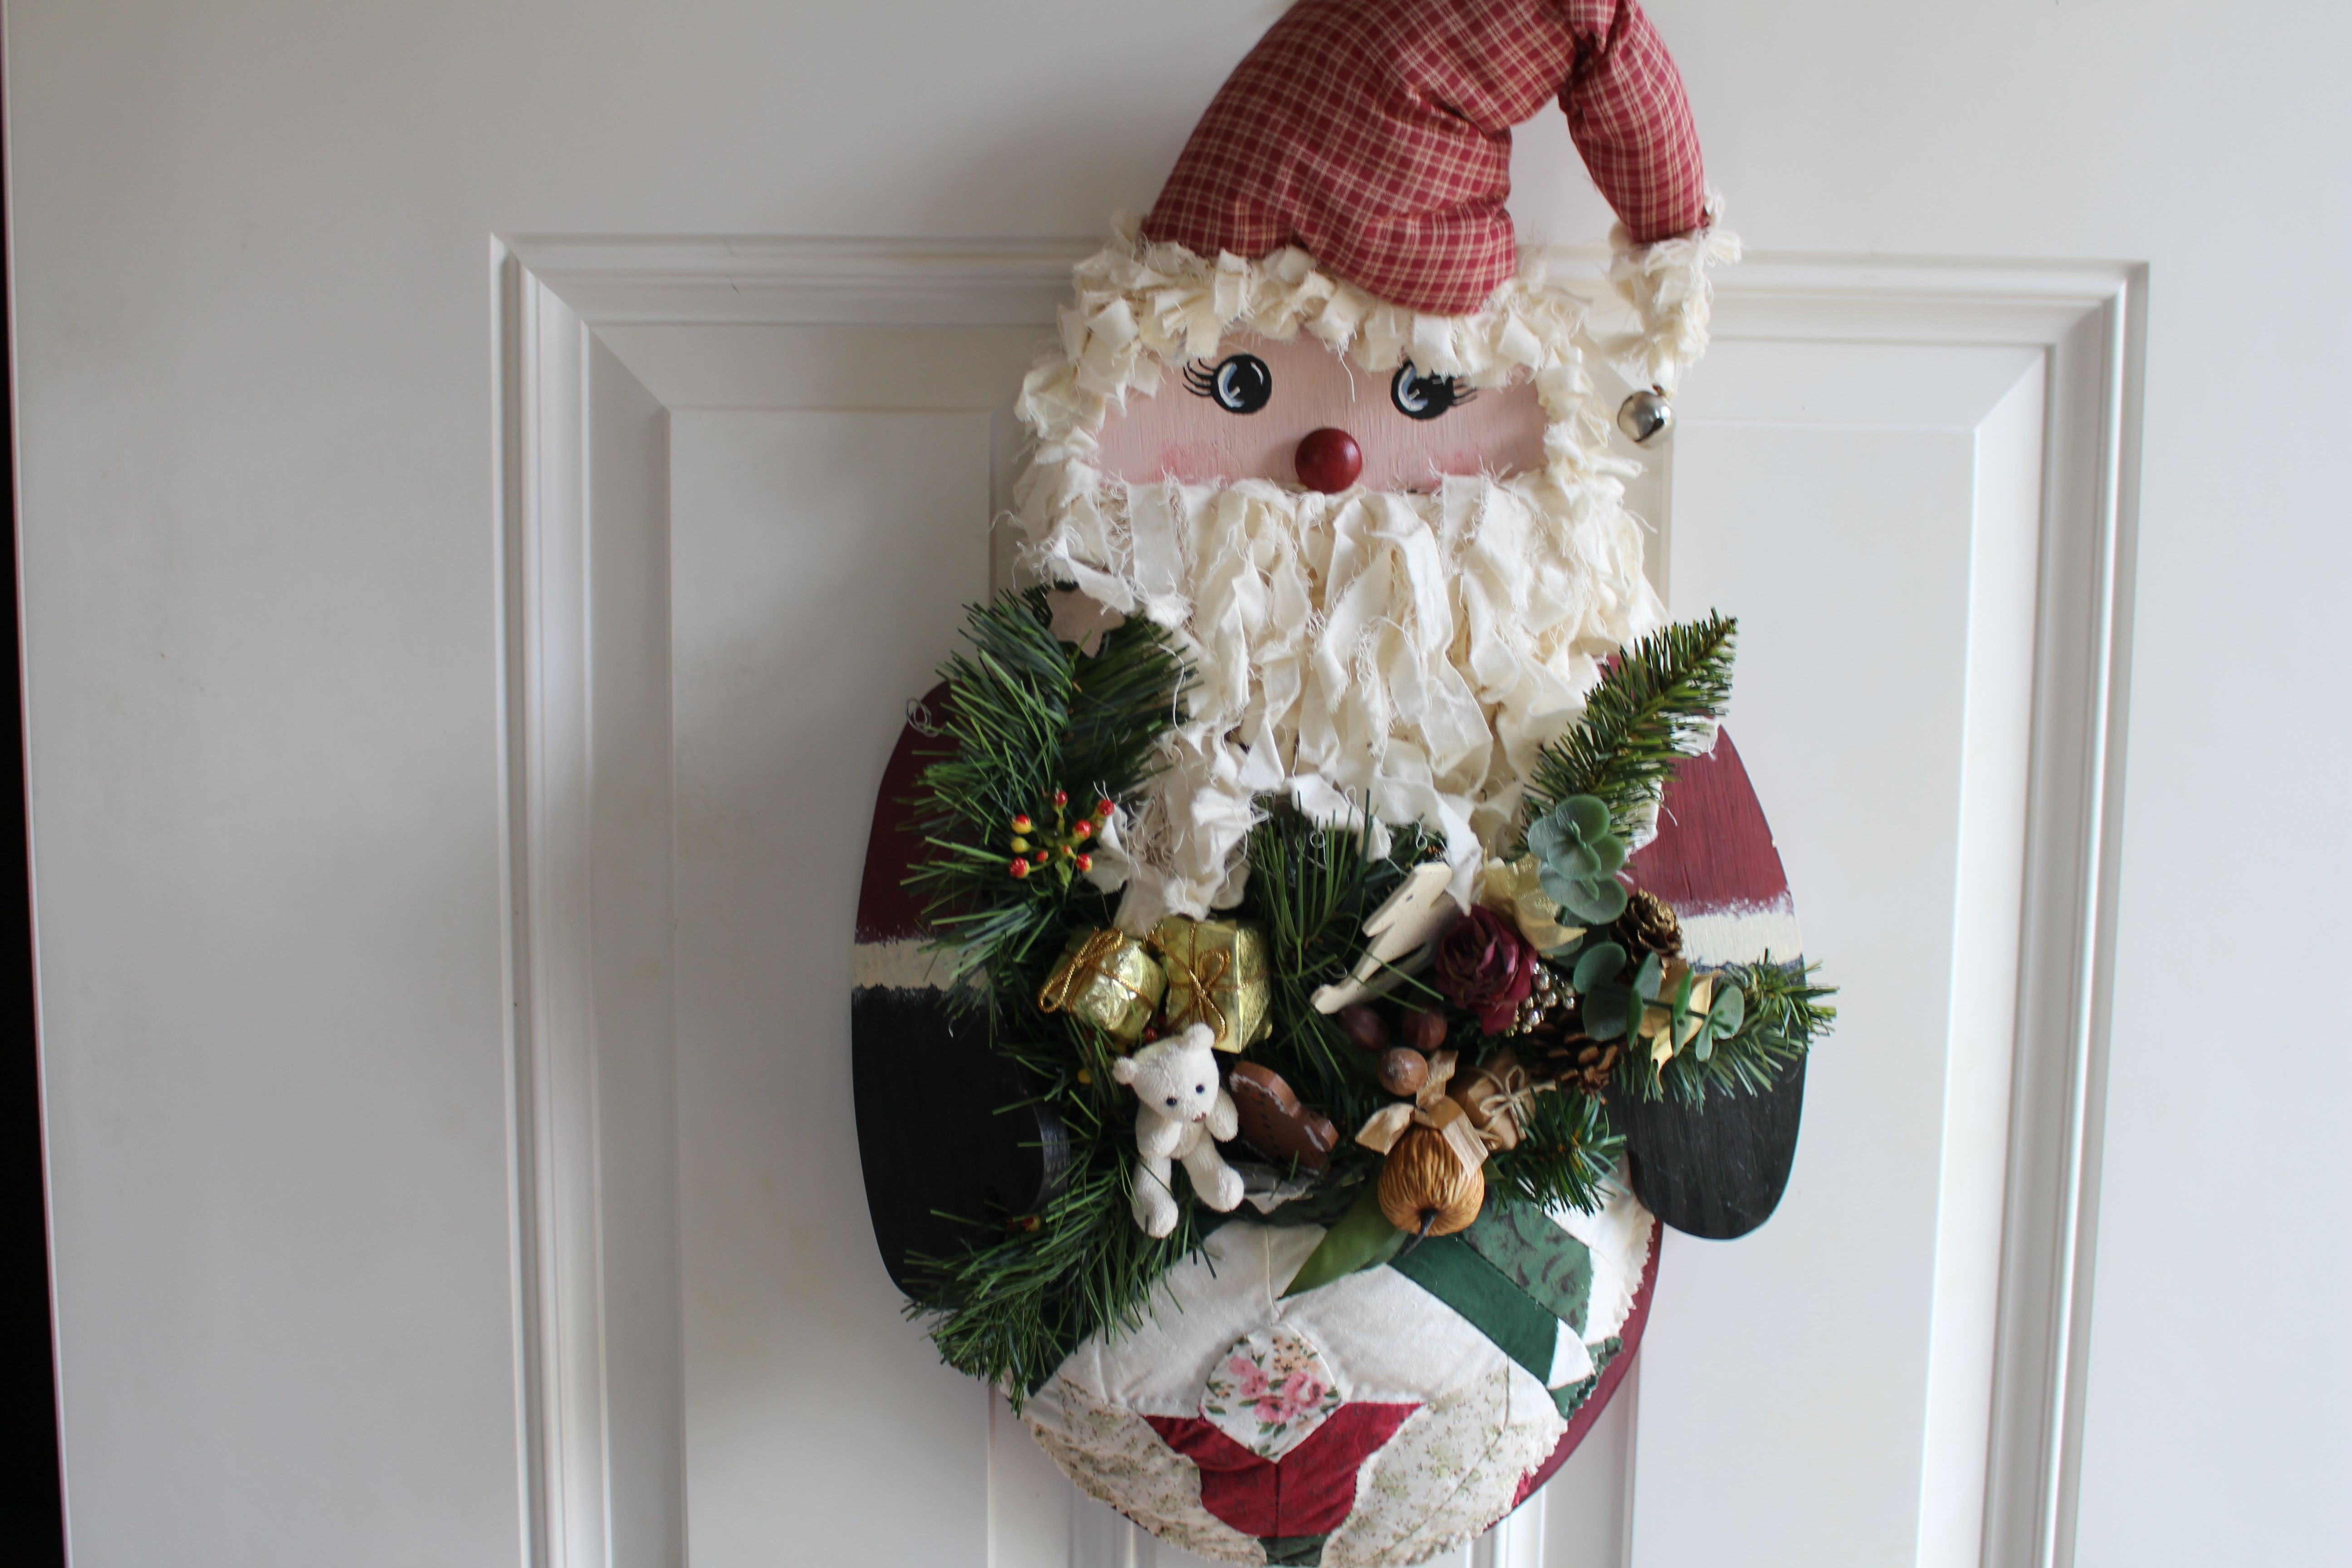 My sister and I made this cute little Santa several years ago.